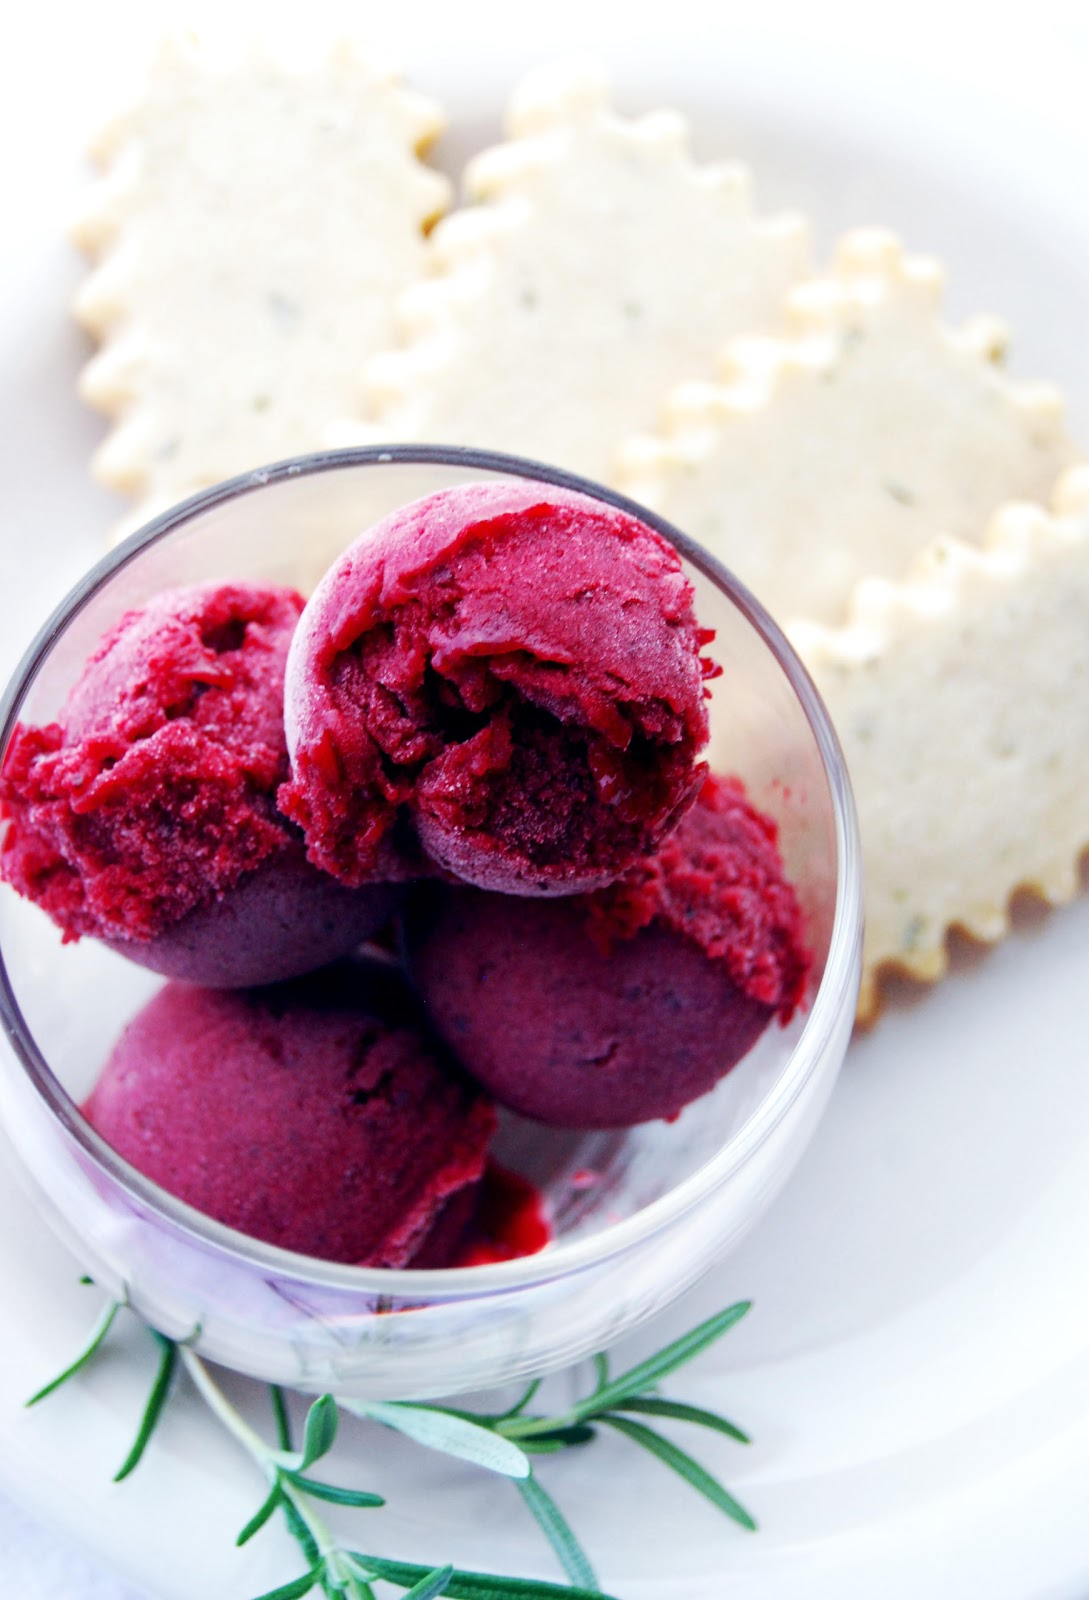 good morning grace.: roasted plum sorbet and rosemary shortbread